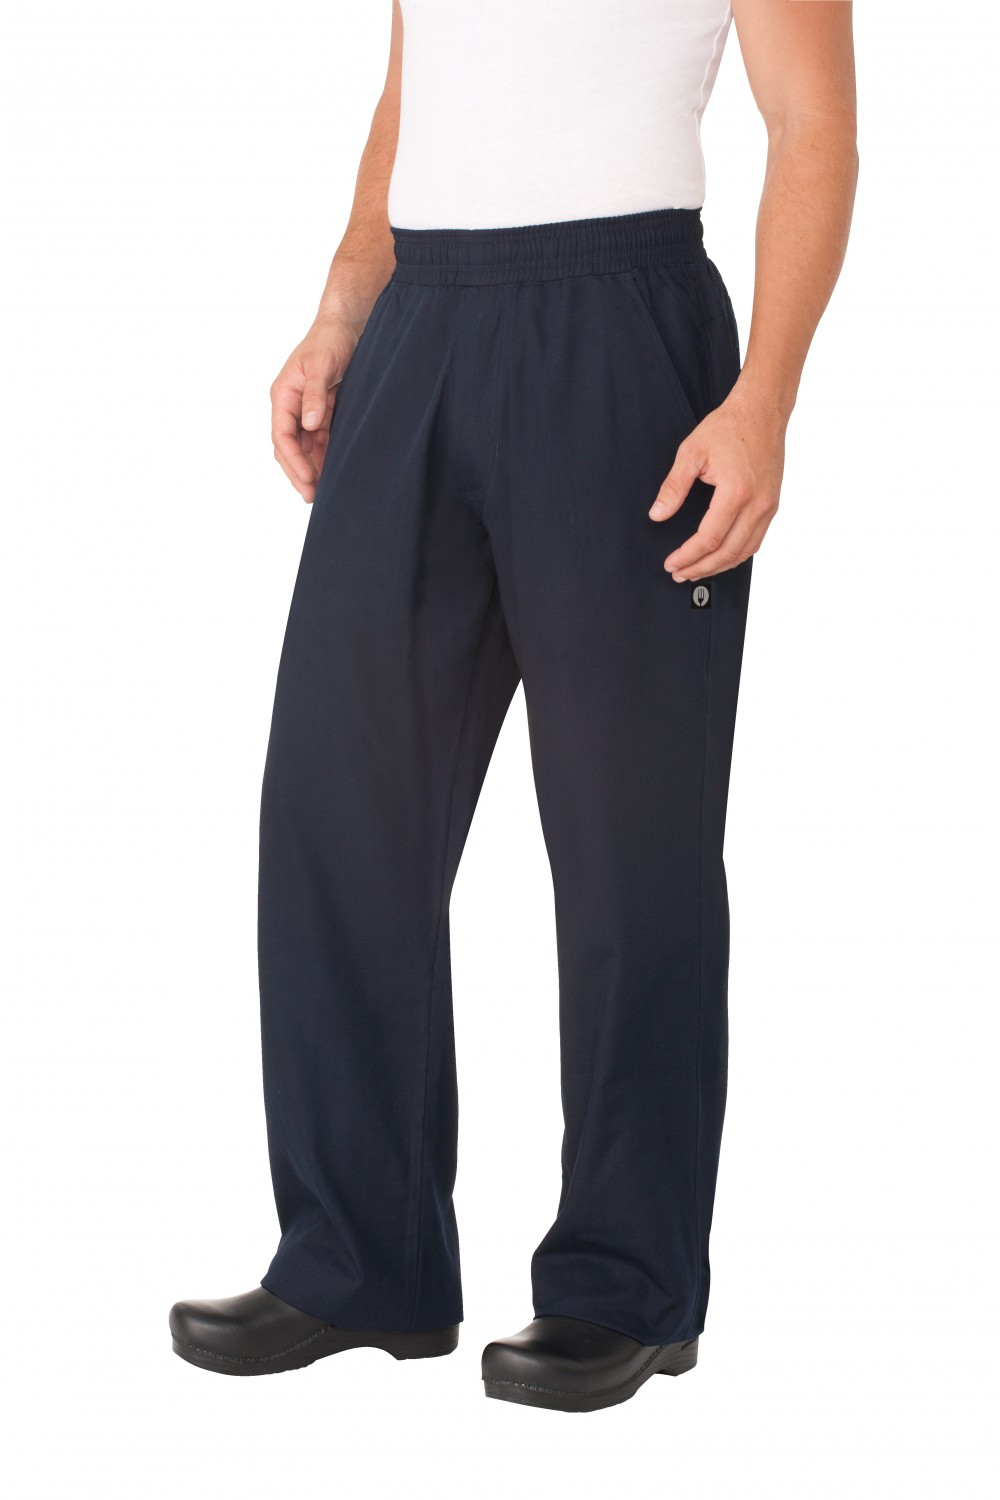 Chef Works BSOL-NVY UltraLux Better Built Baggy Pants, Navy